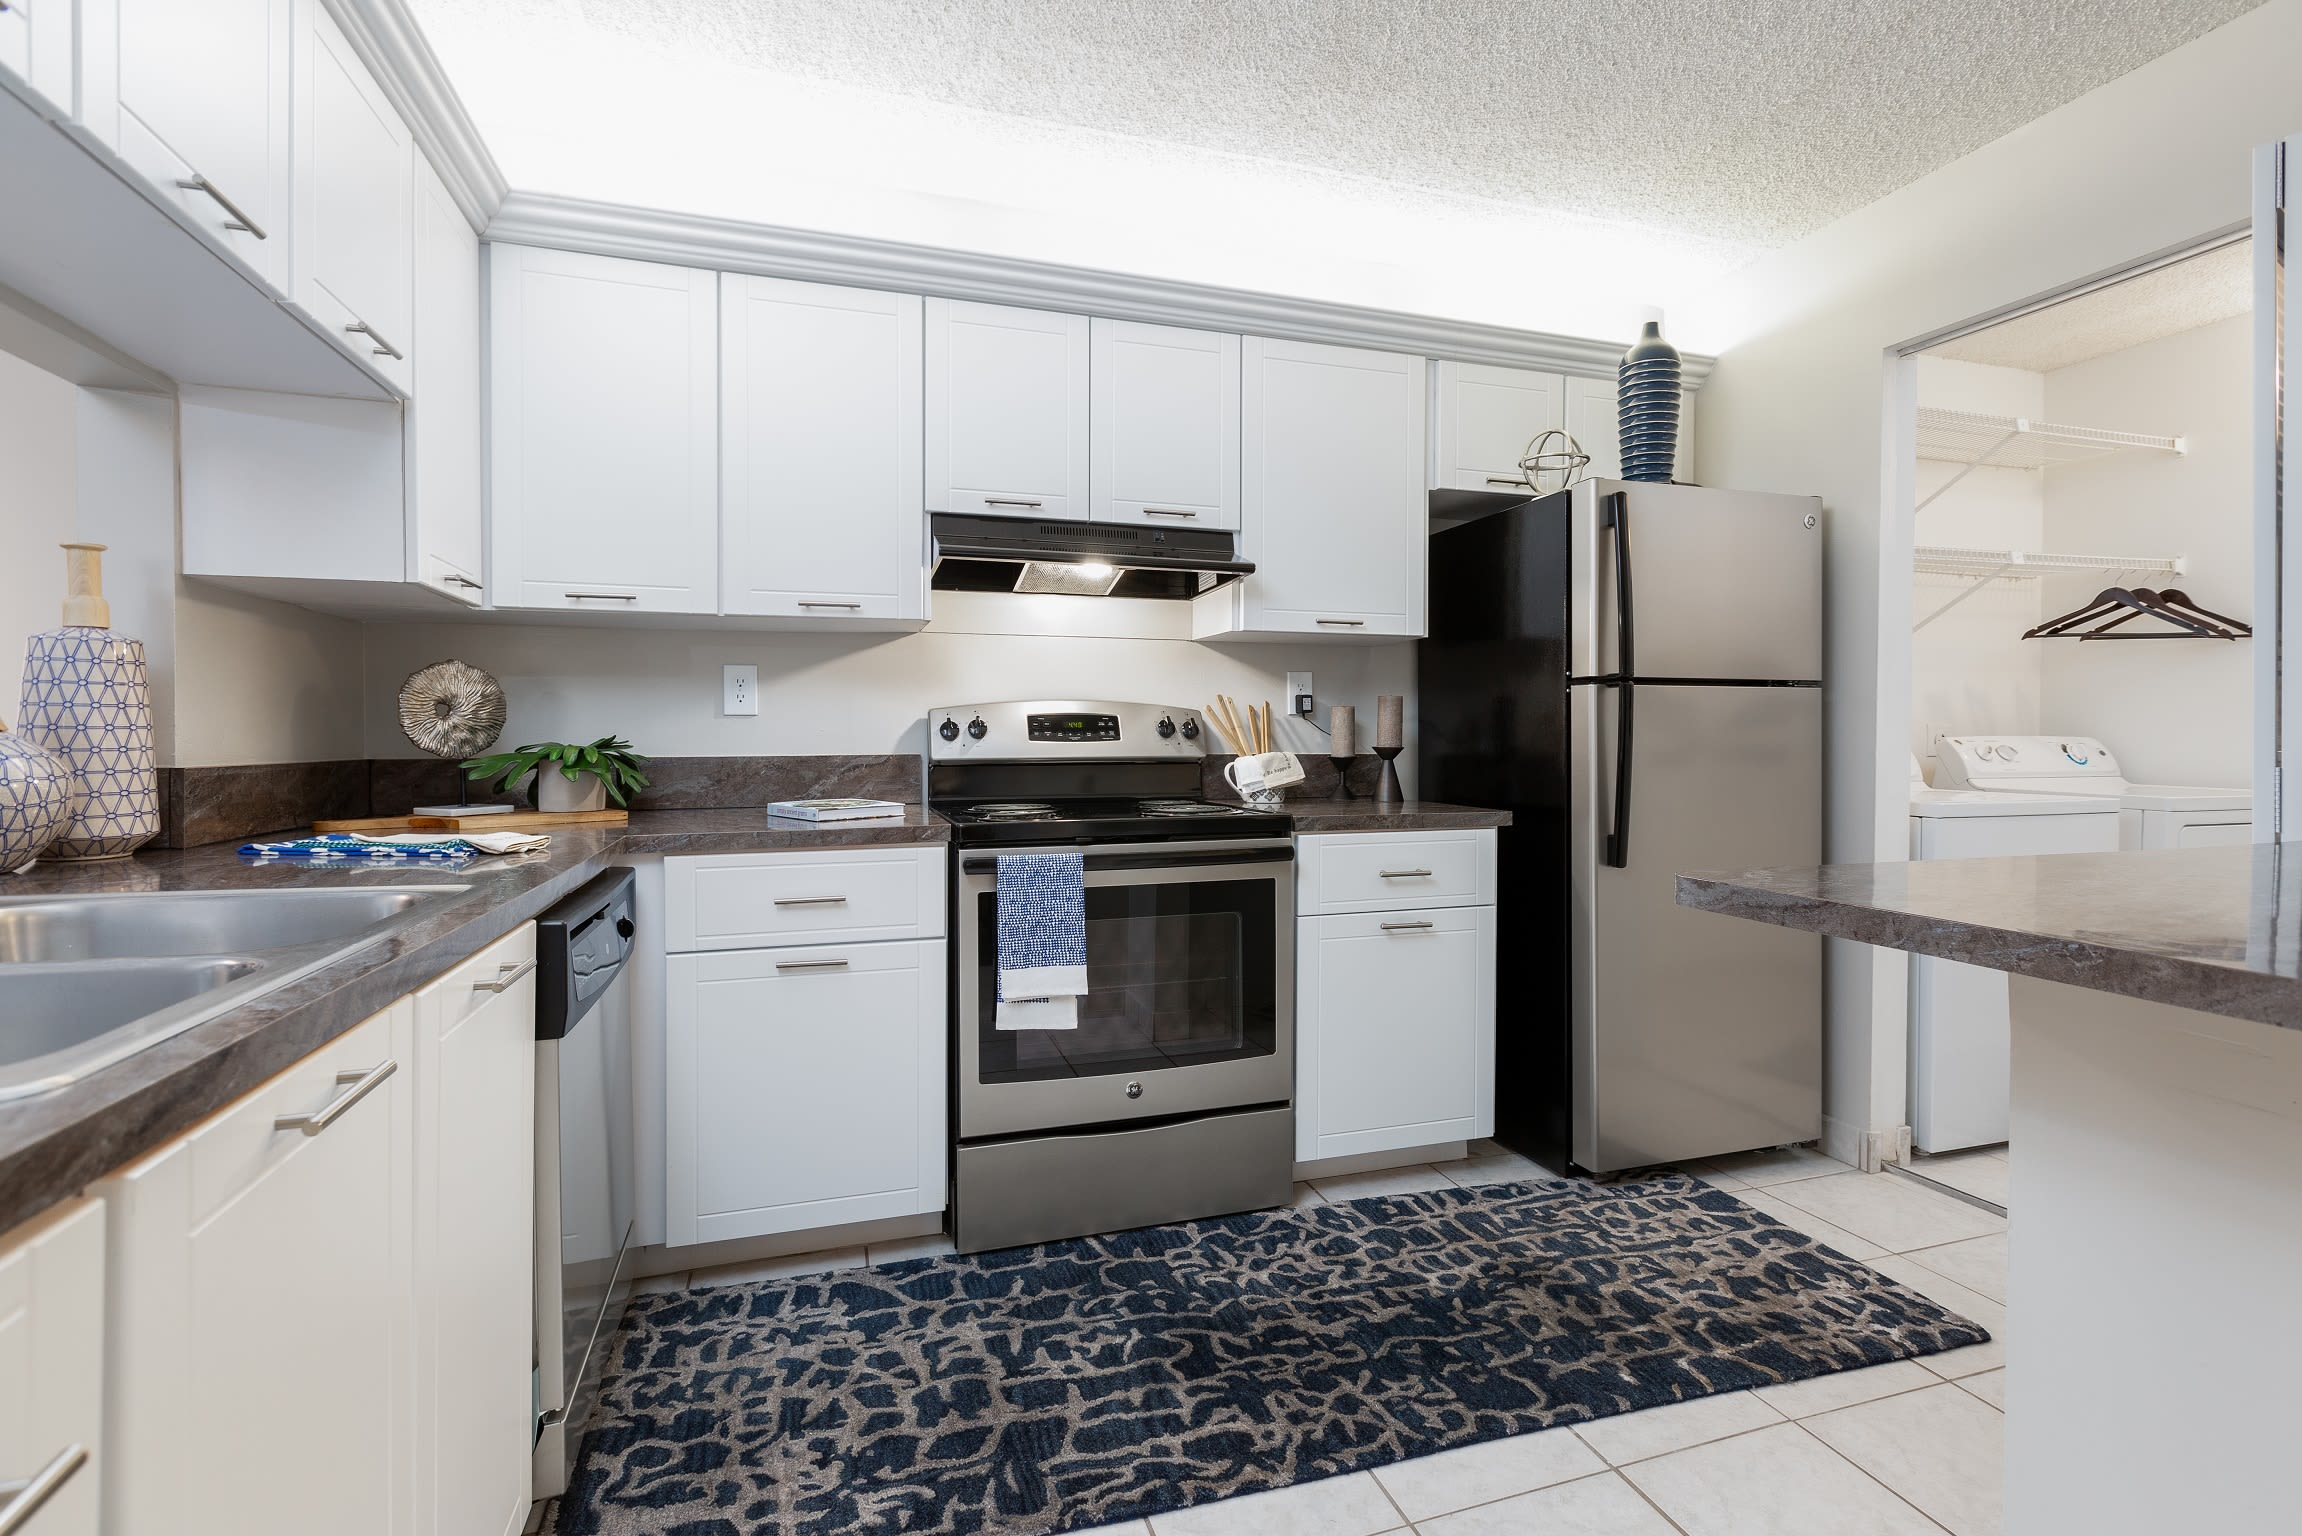 Affordable 2 Bedroom Apartments In Royal Palm Beach Fl